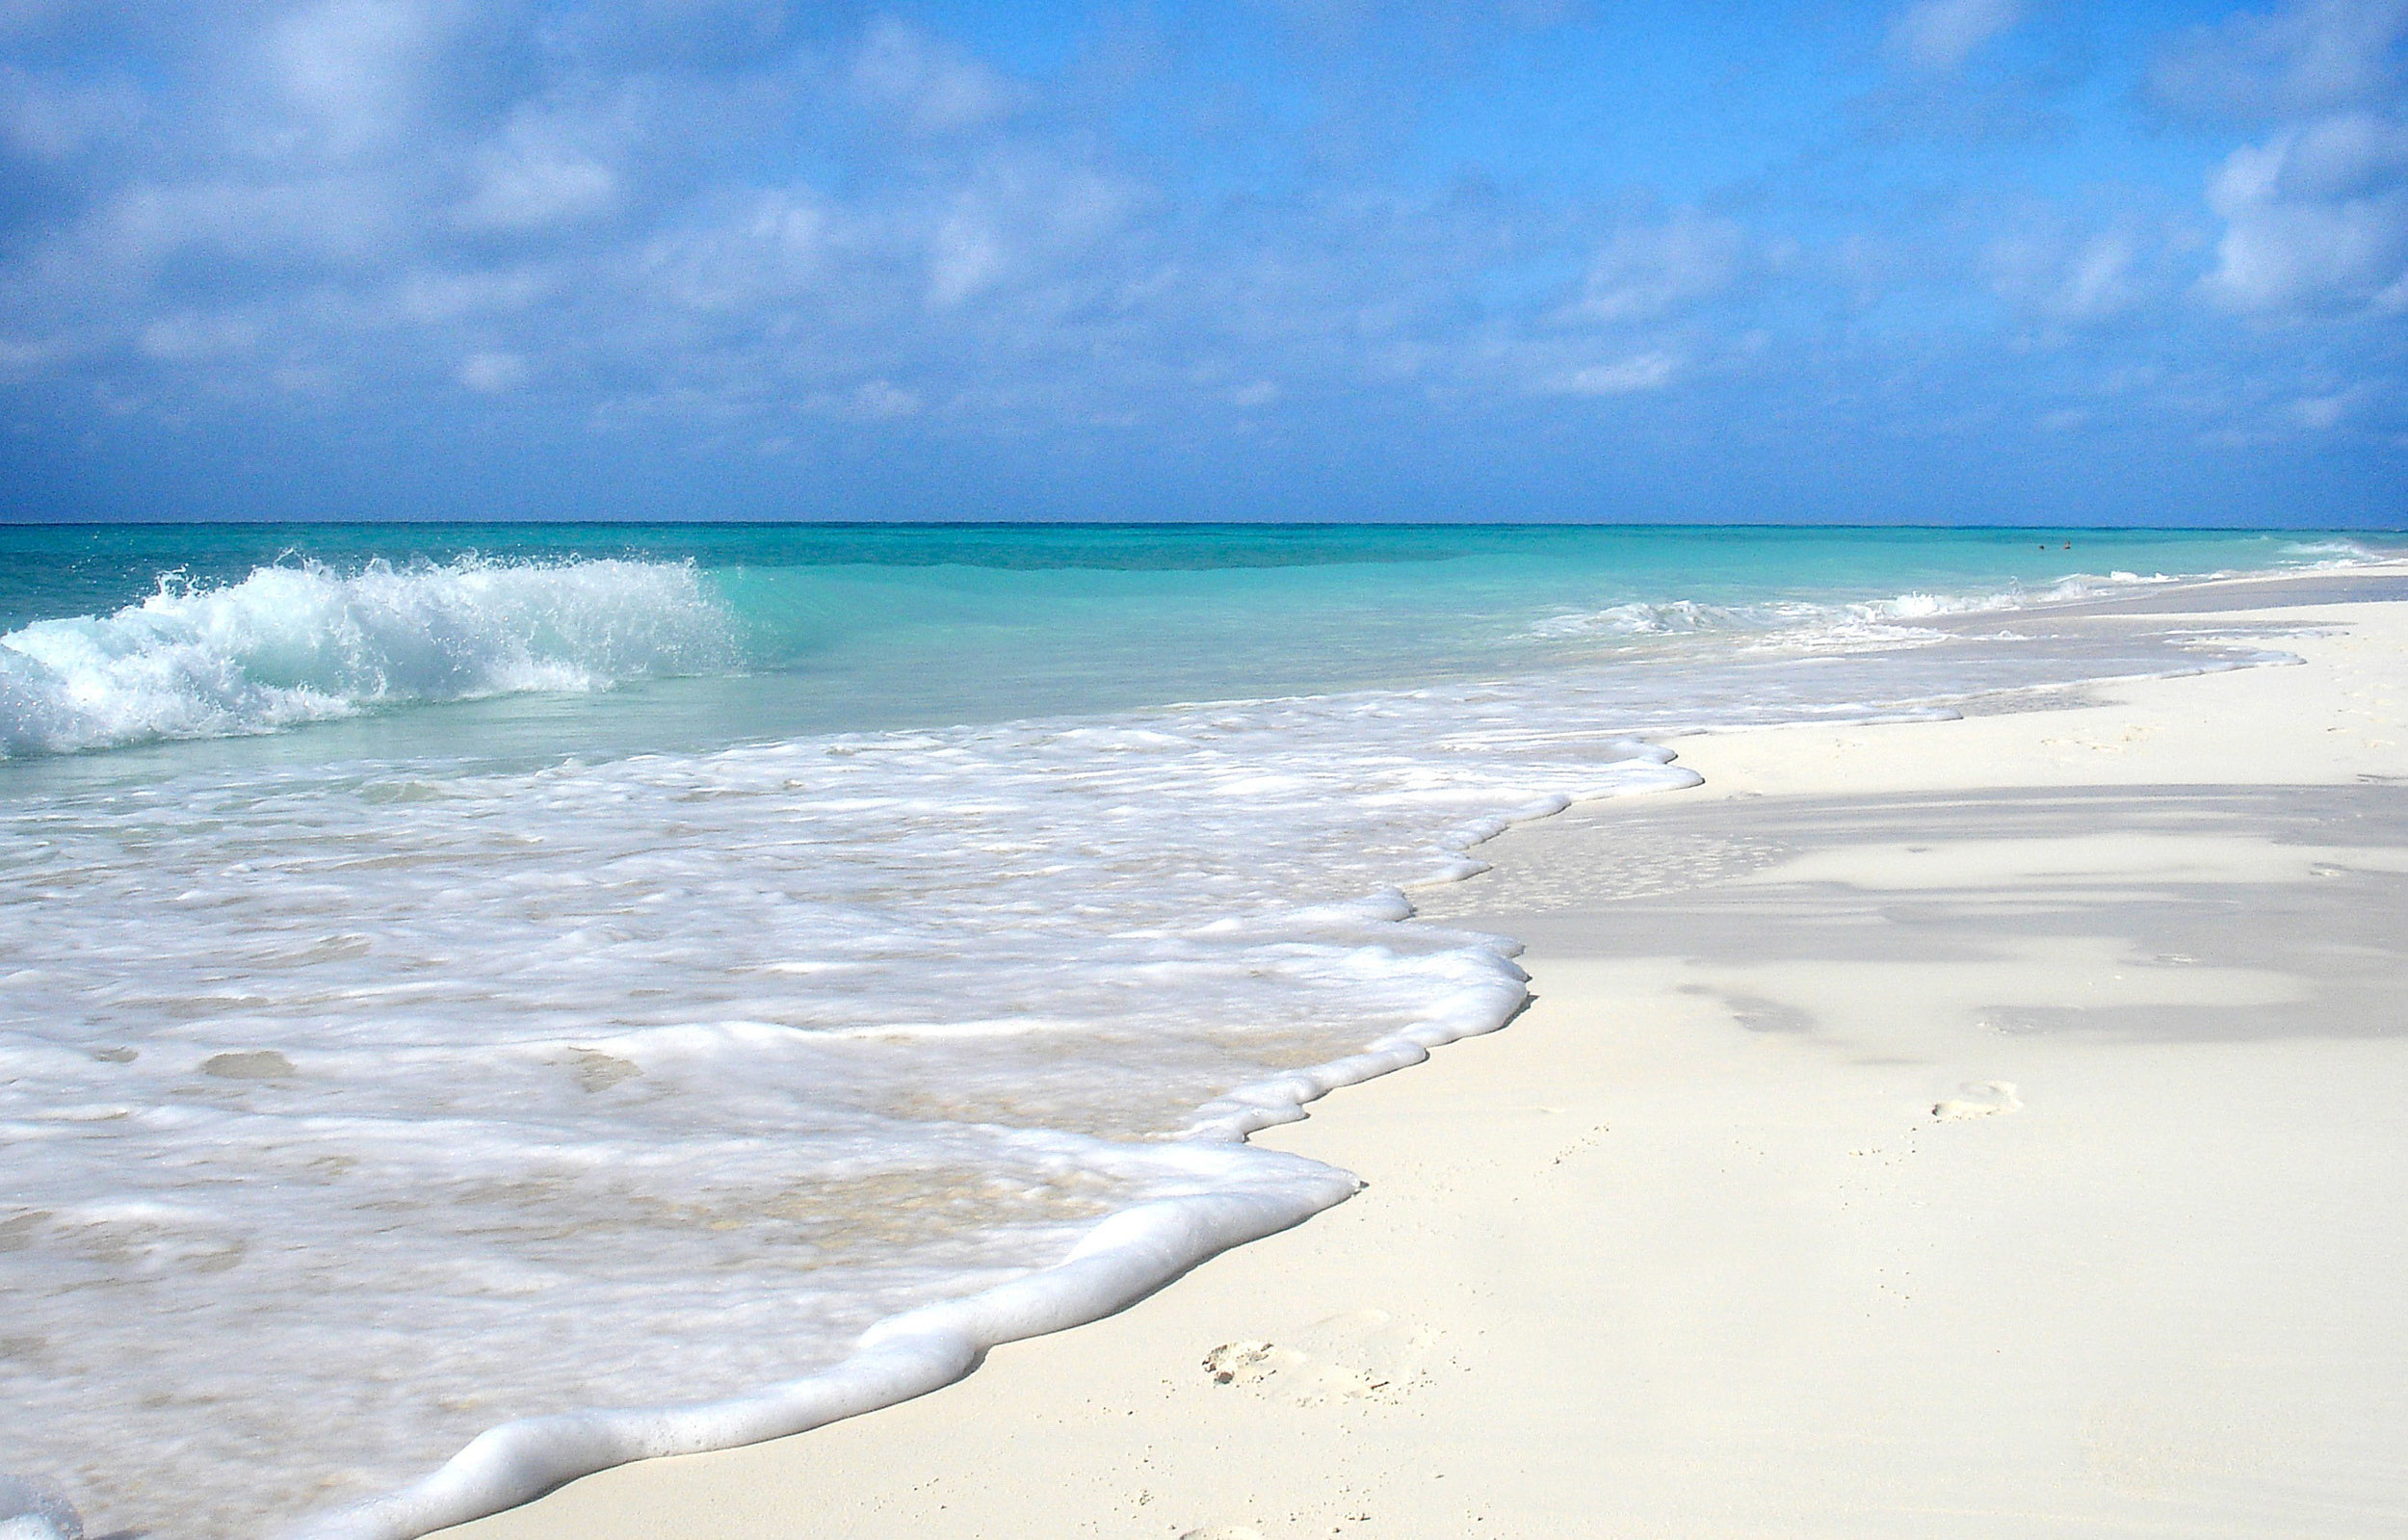 beach-and-ocean-landscape-cuba.jpg